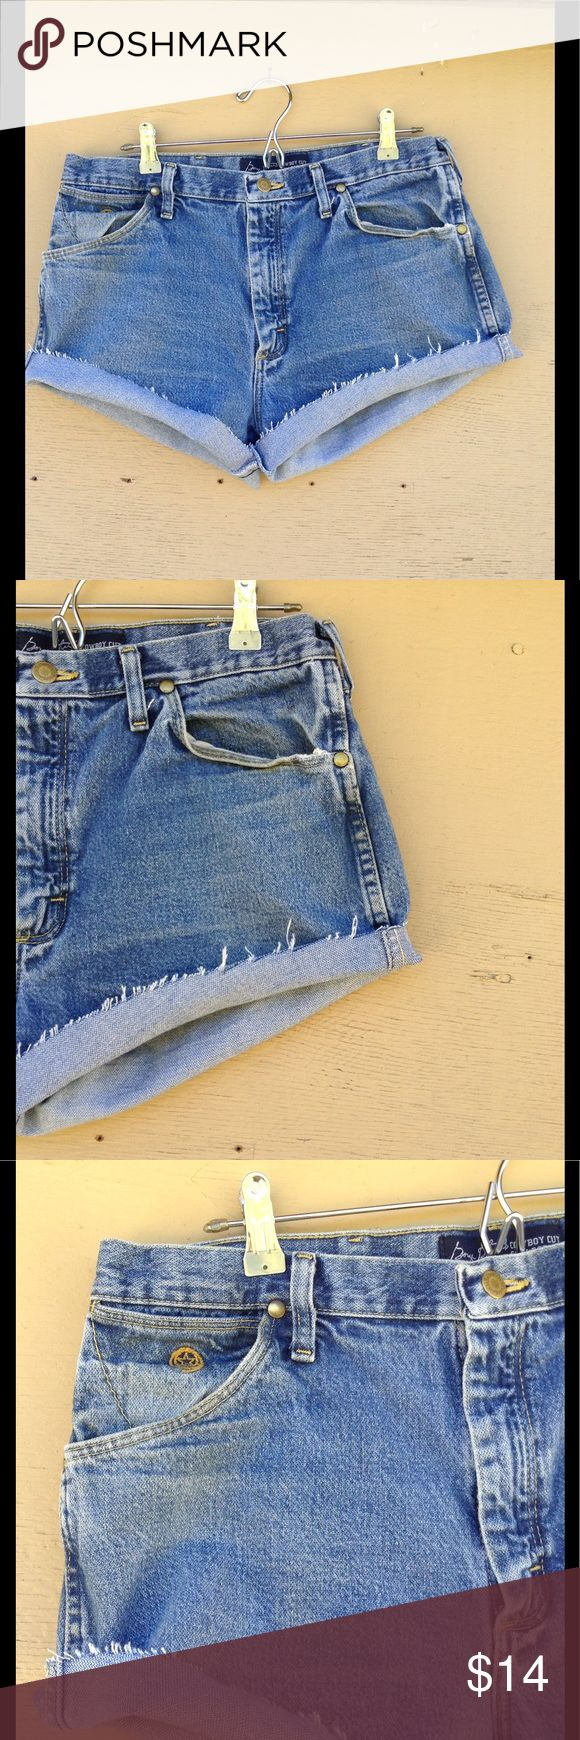 Vintage Wrangler Shorts These are revamped Vintage Wrangler jeans.  Size 34.   Add to a bundle for an automatic discount or make an offer!   If you bundle tour likes together I can send you a private discounted offer, just let me know! Wrangler Shorts Jean Shorts